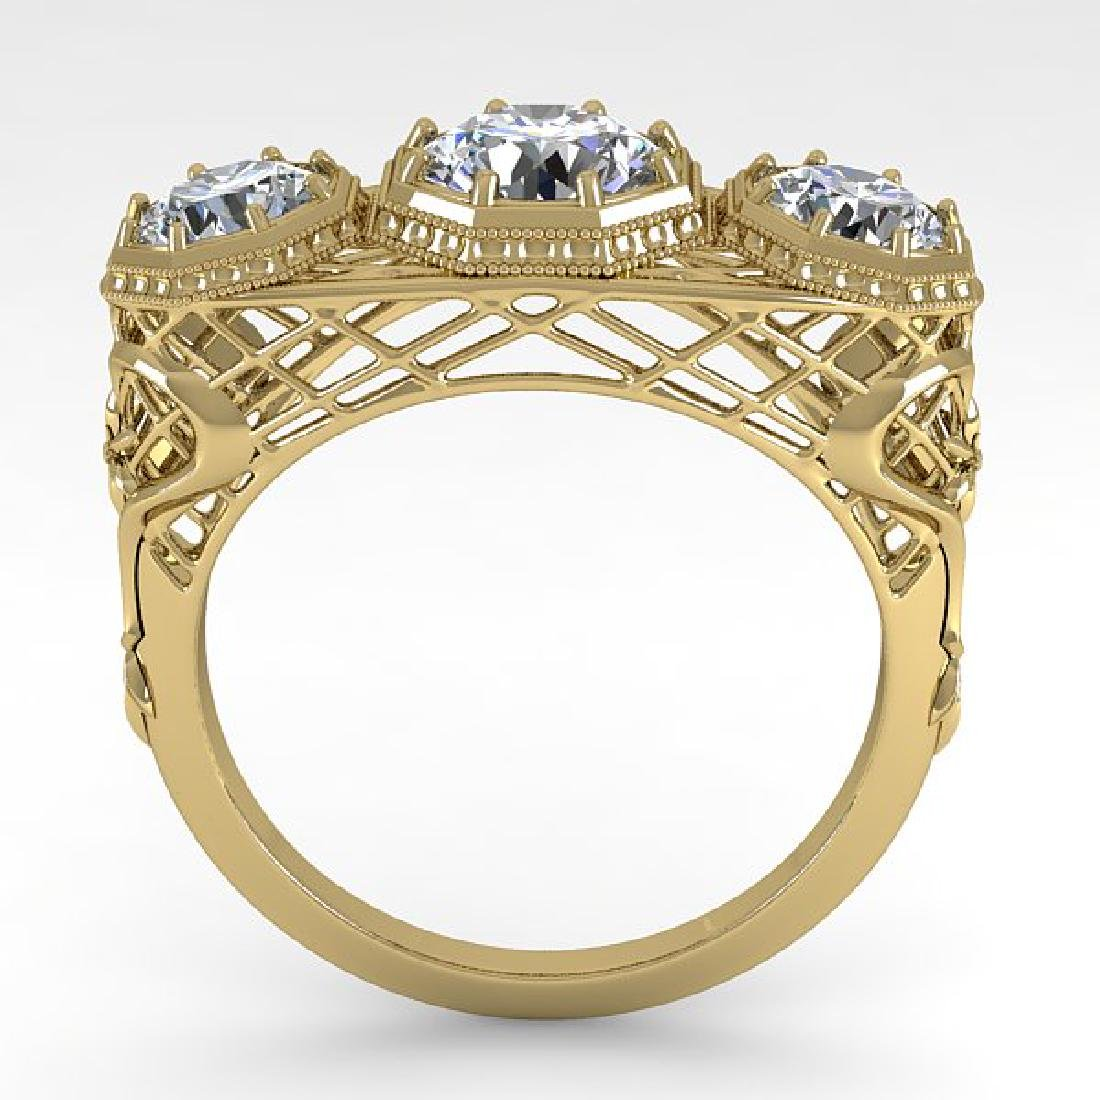 2 CTW VS/SI Diamond Ring 14K Yellow Gold - 3